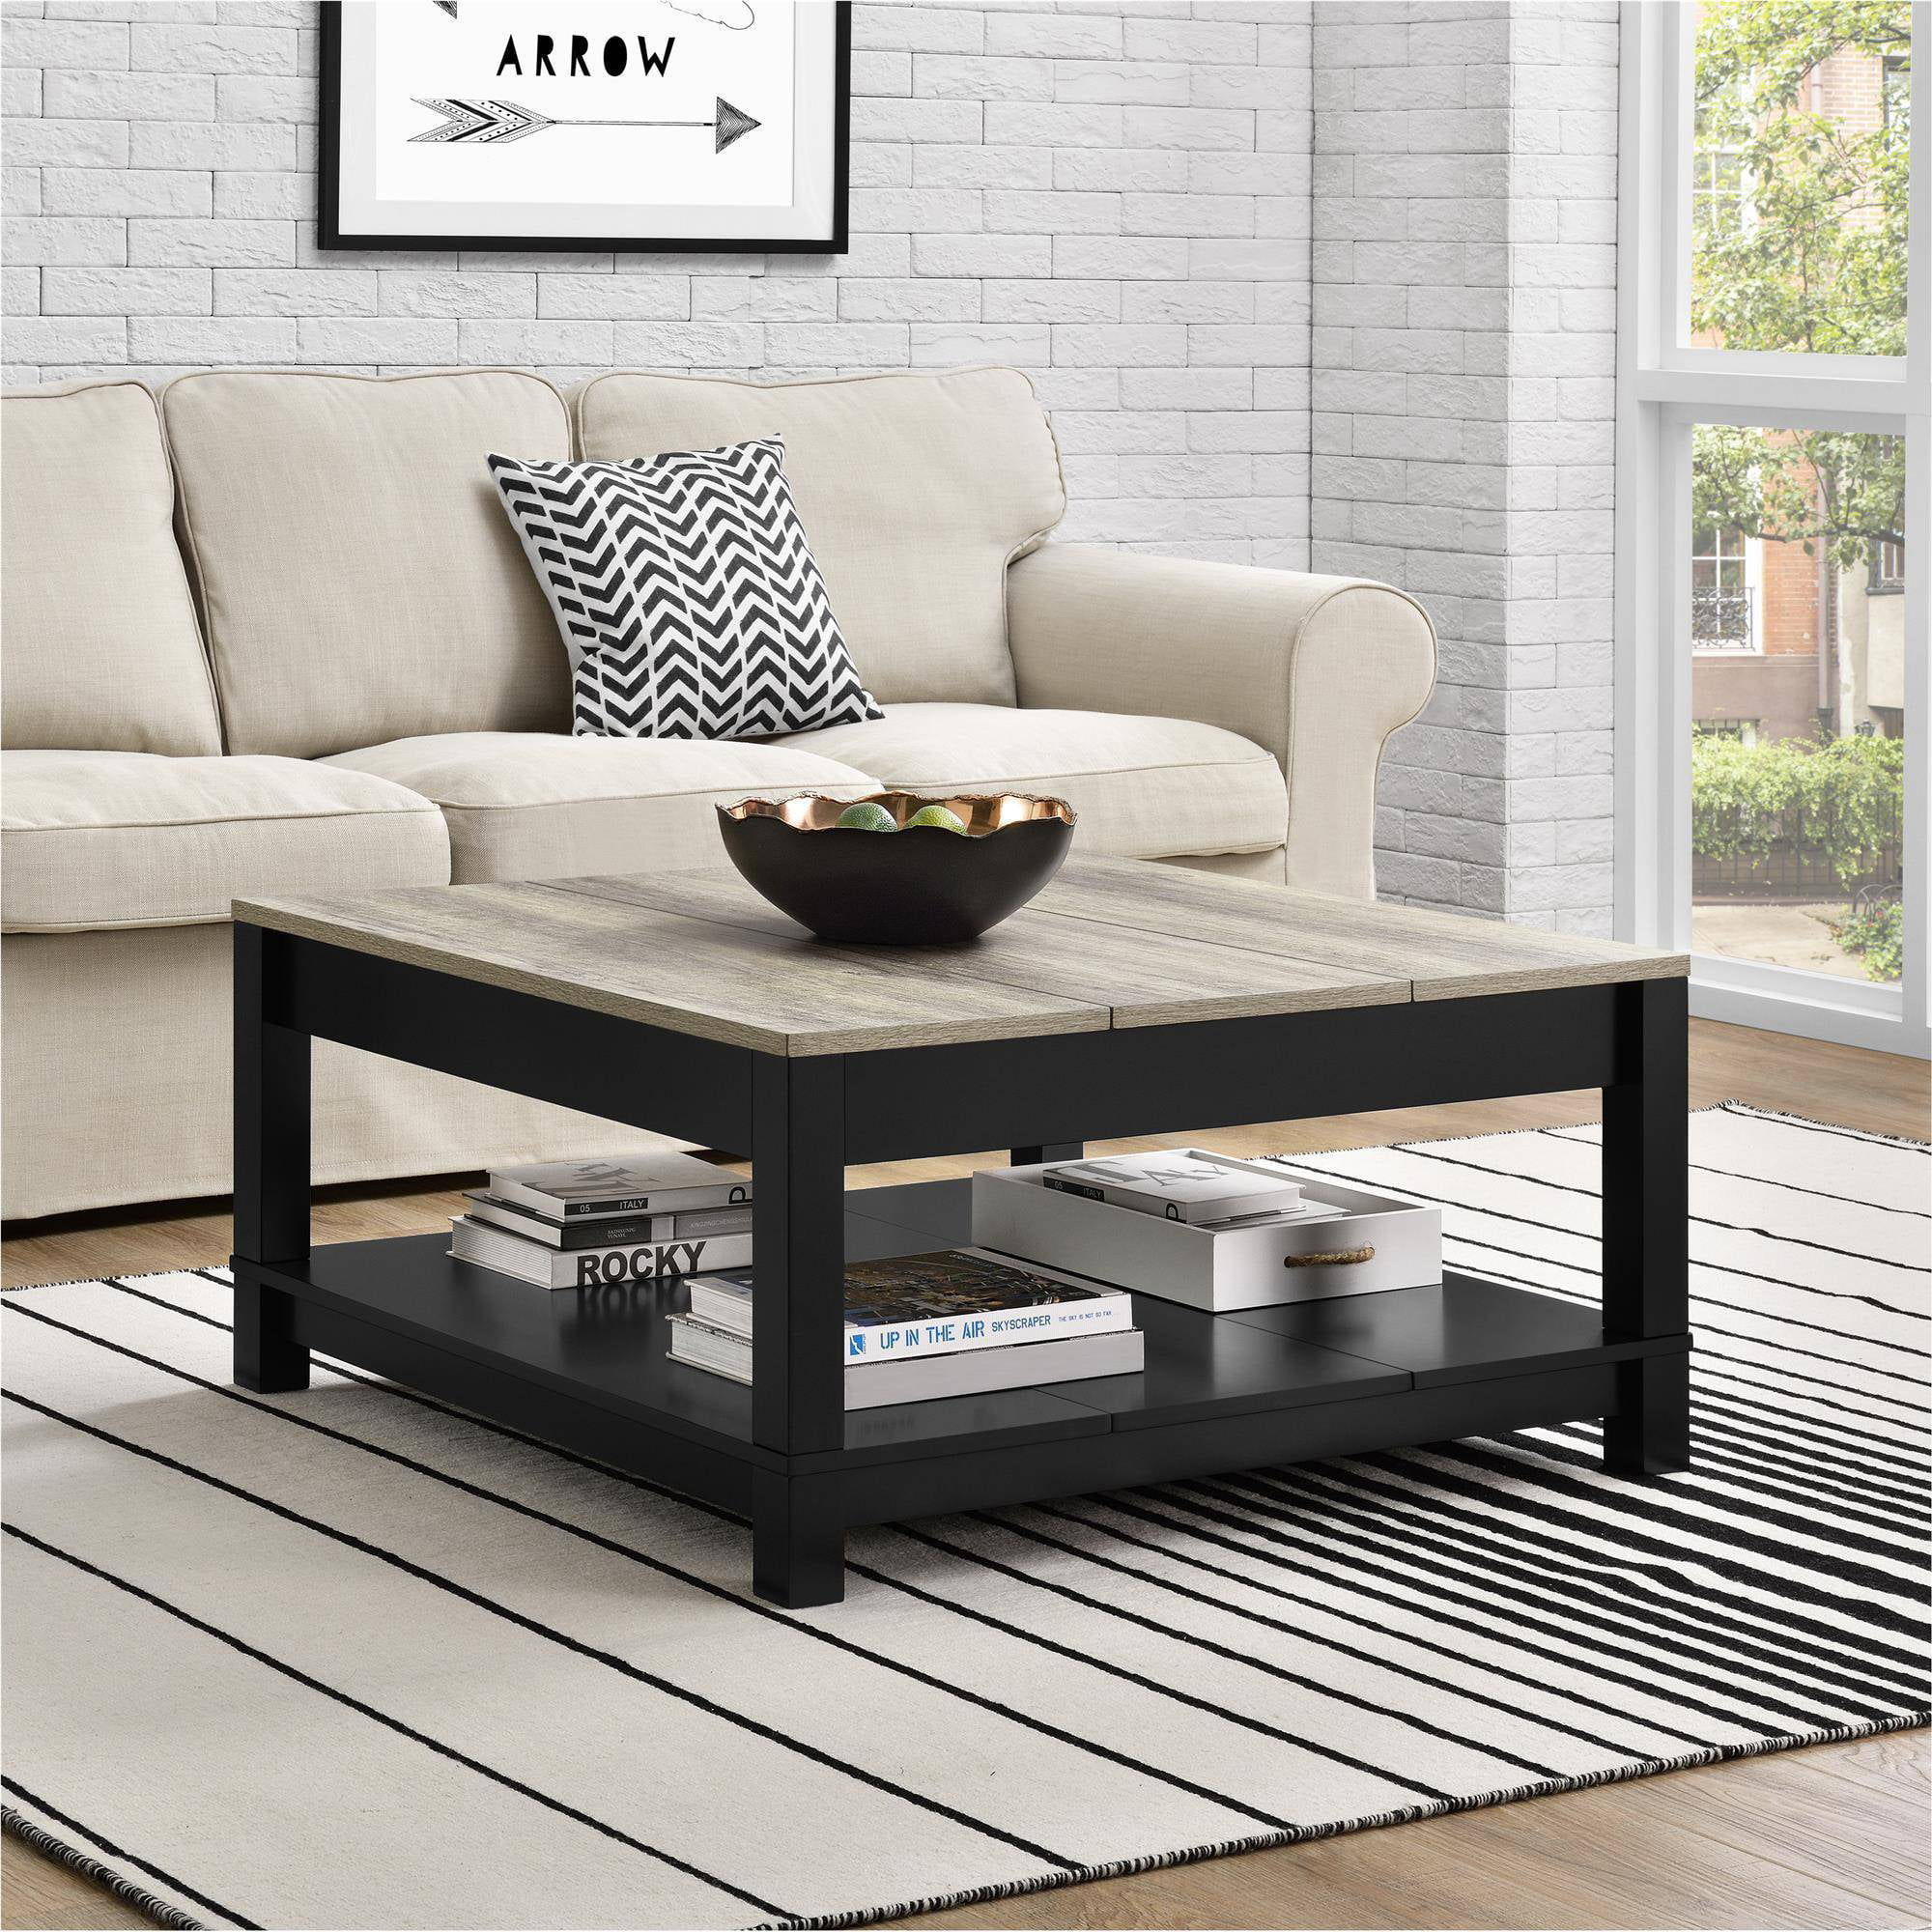 Better Homes and Gardens Langley Bay Coffee Table, Multiple Colors by Ameriwood Industries